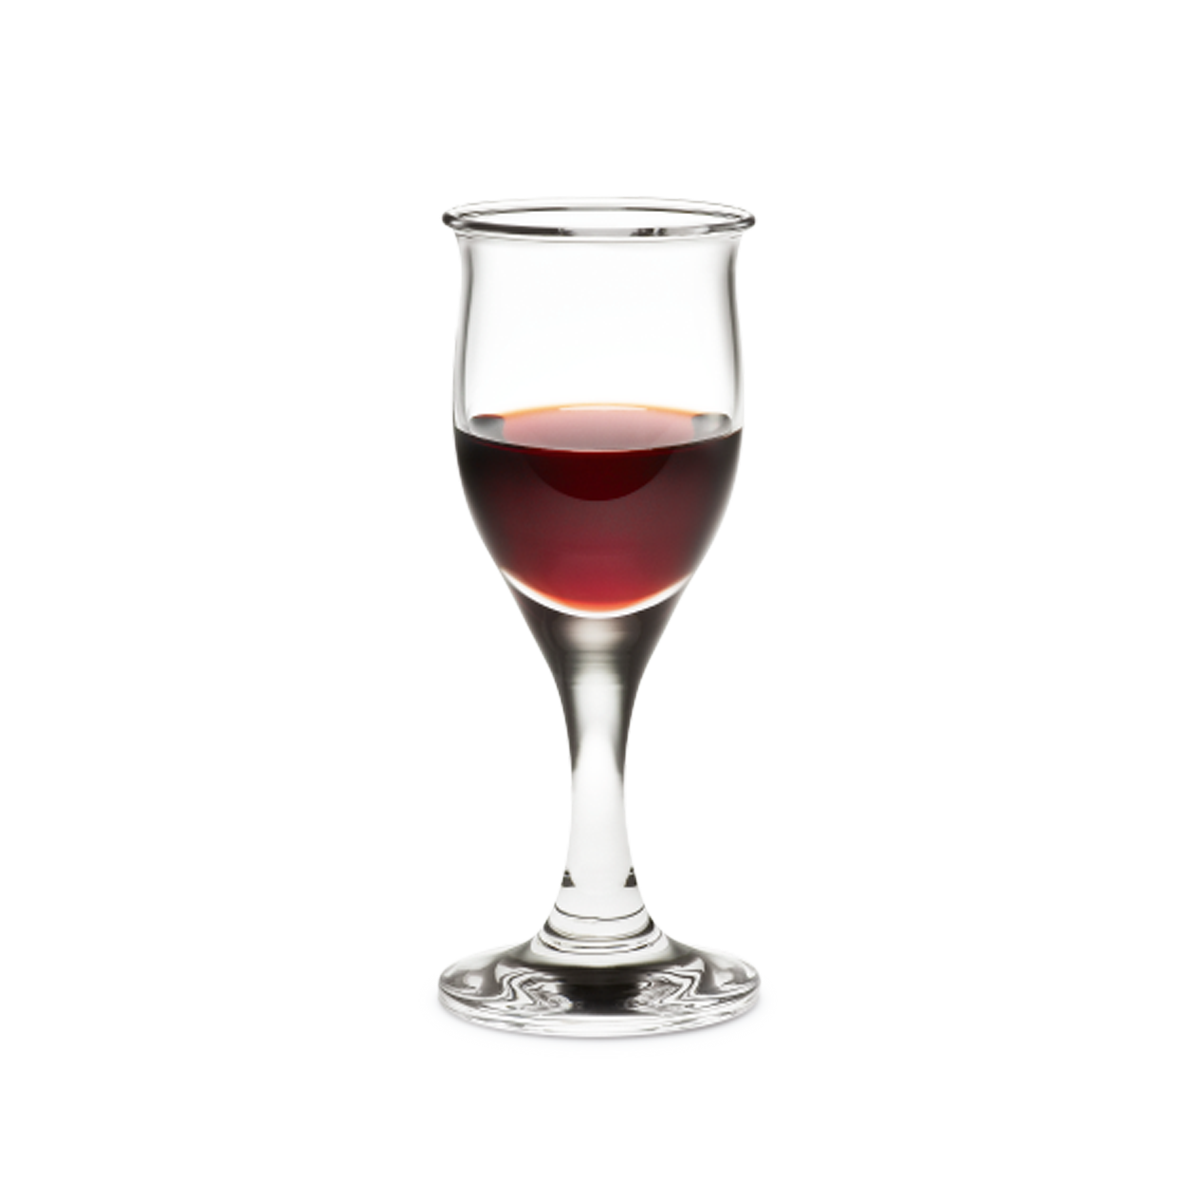 Cl Dessert Wine Glass